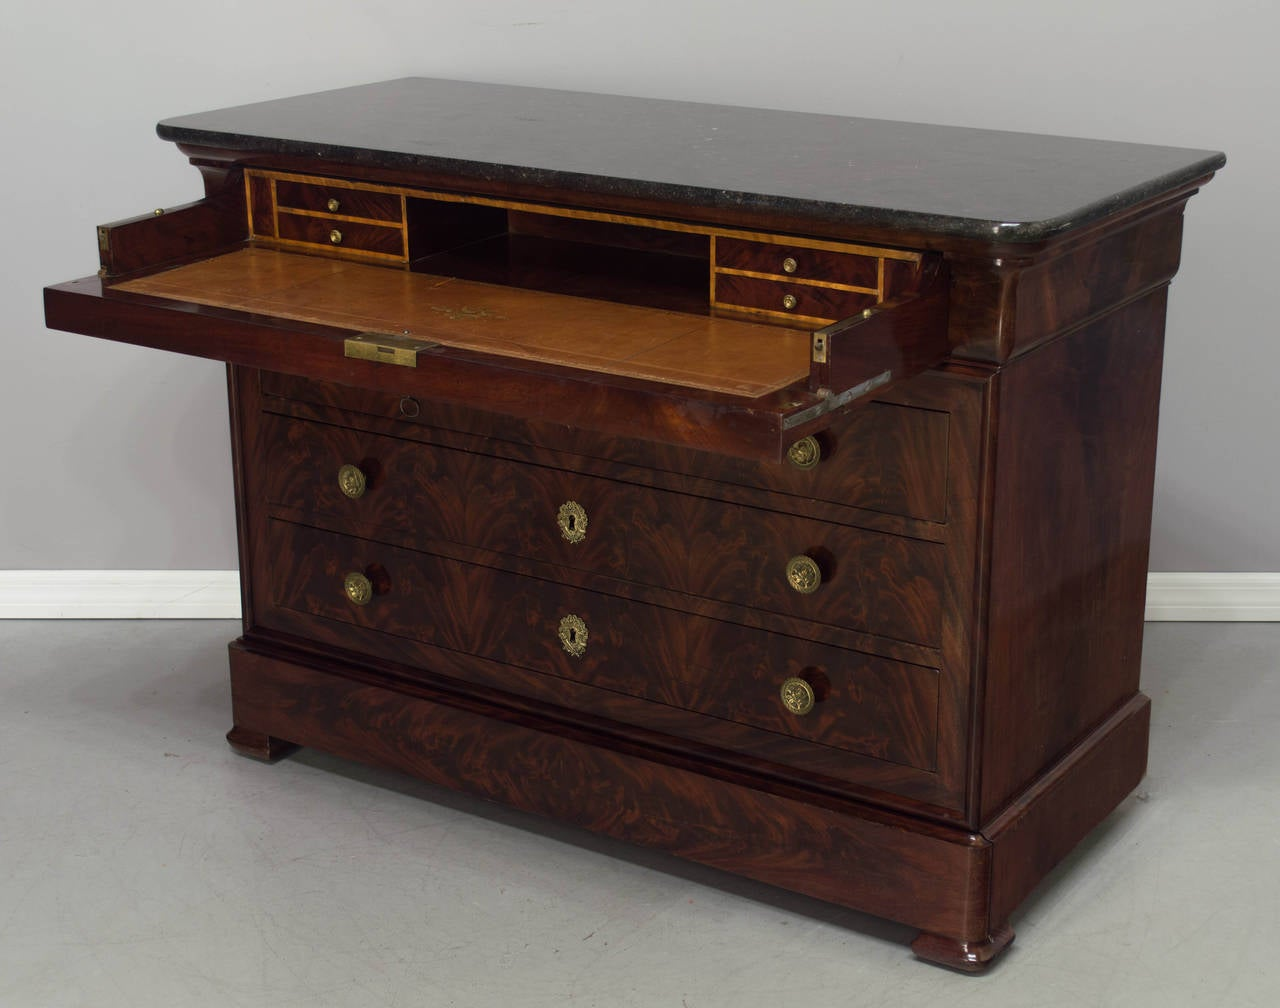 19th century louis philippe mahogany commode or secretaire at 1stdibs - Commode secretaire louis philippe ...